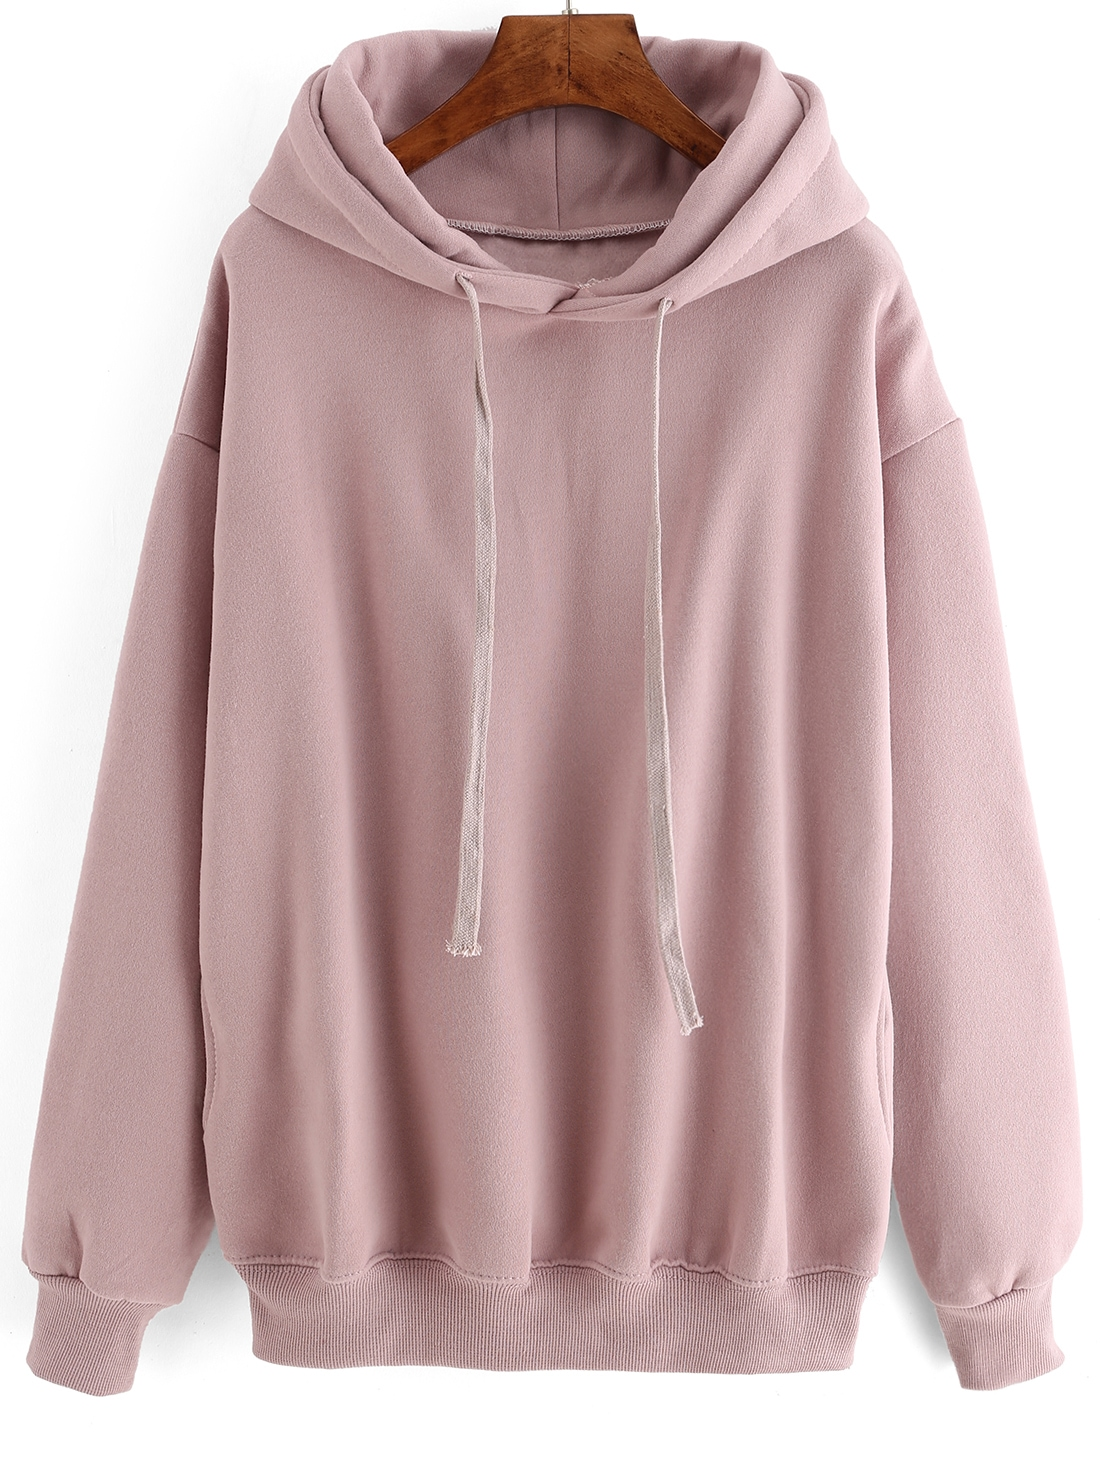 hooded drawstring loose pink sweatshirtfor women romwe. Black Bedroom Furniture Sets. Home Design Ideas